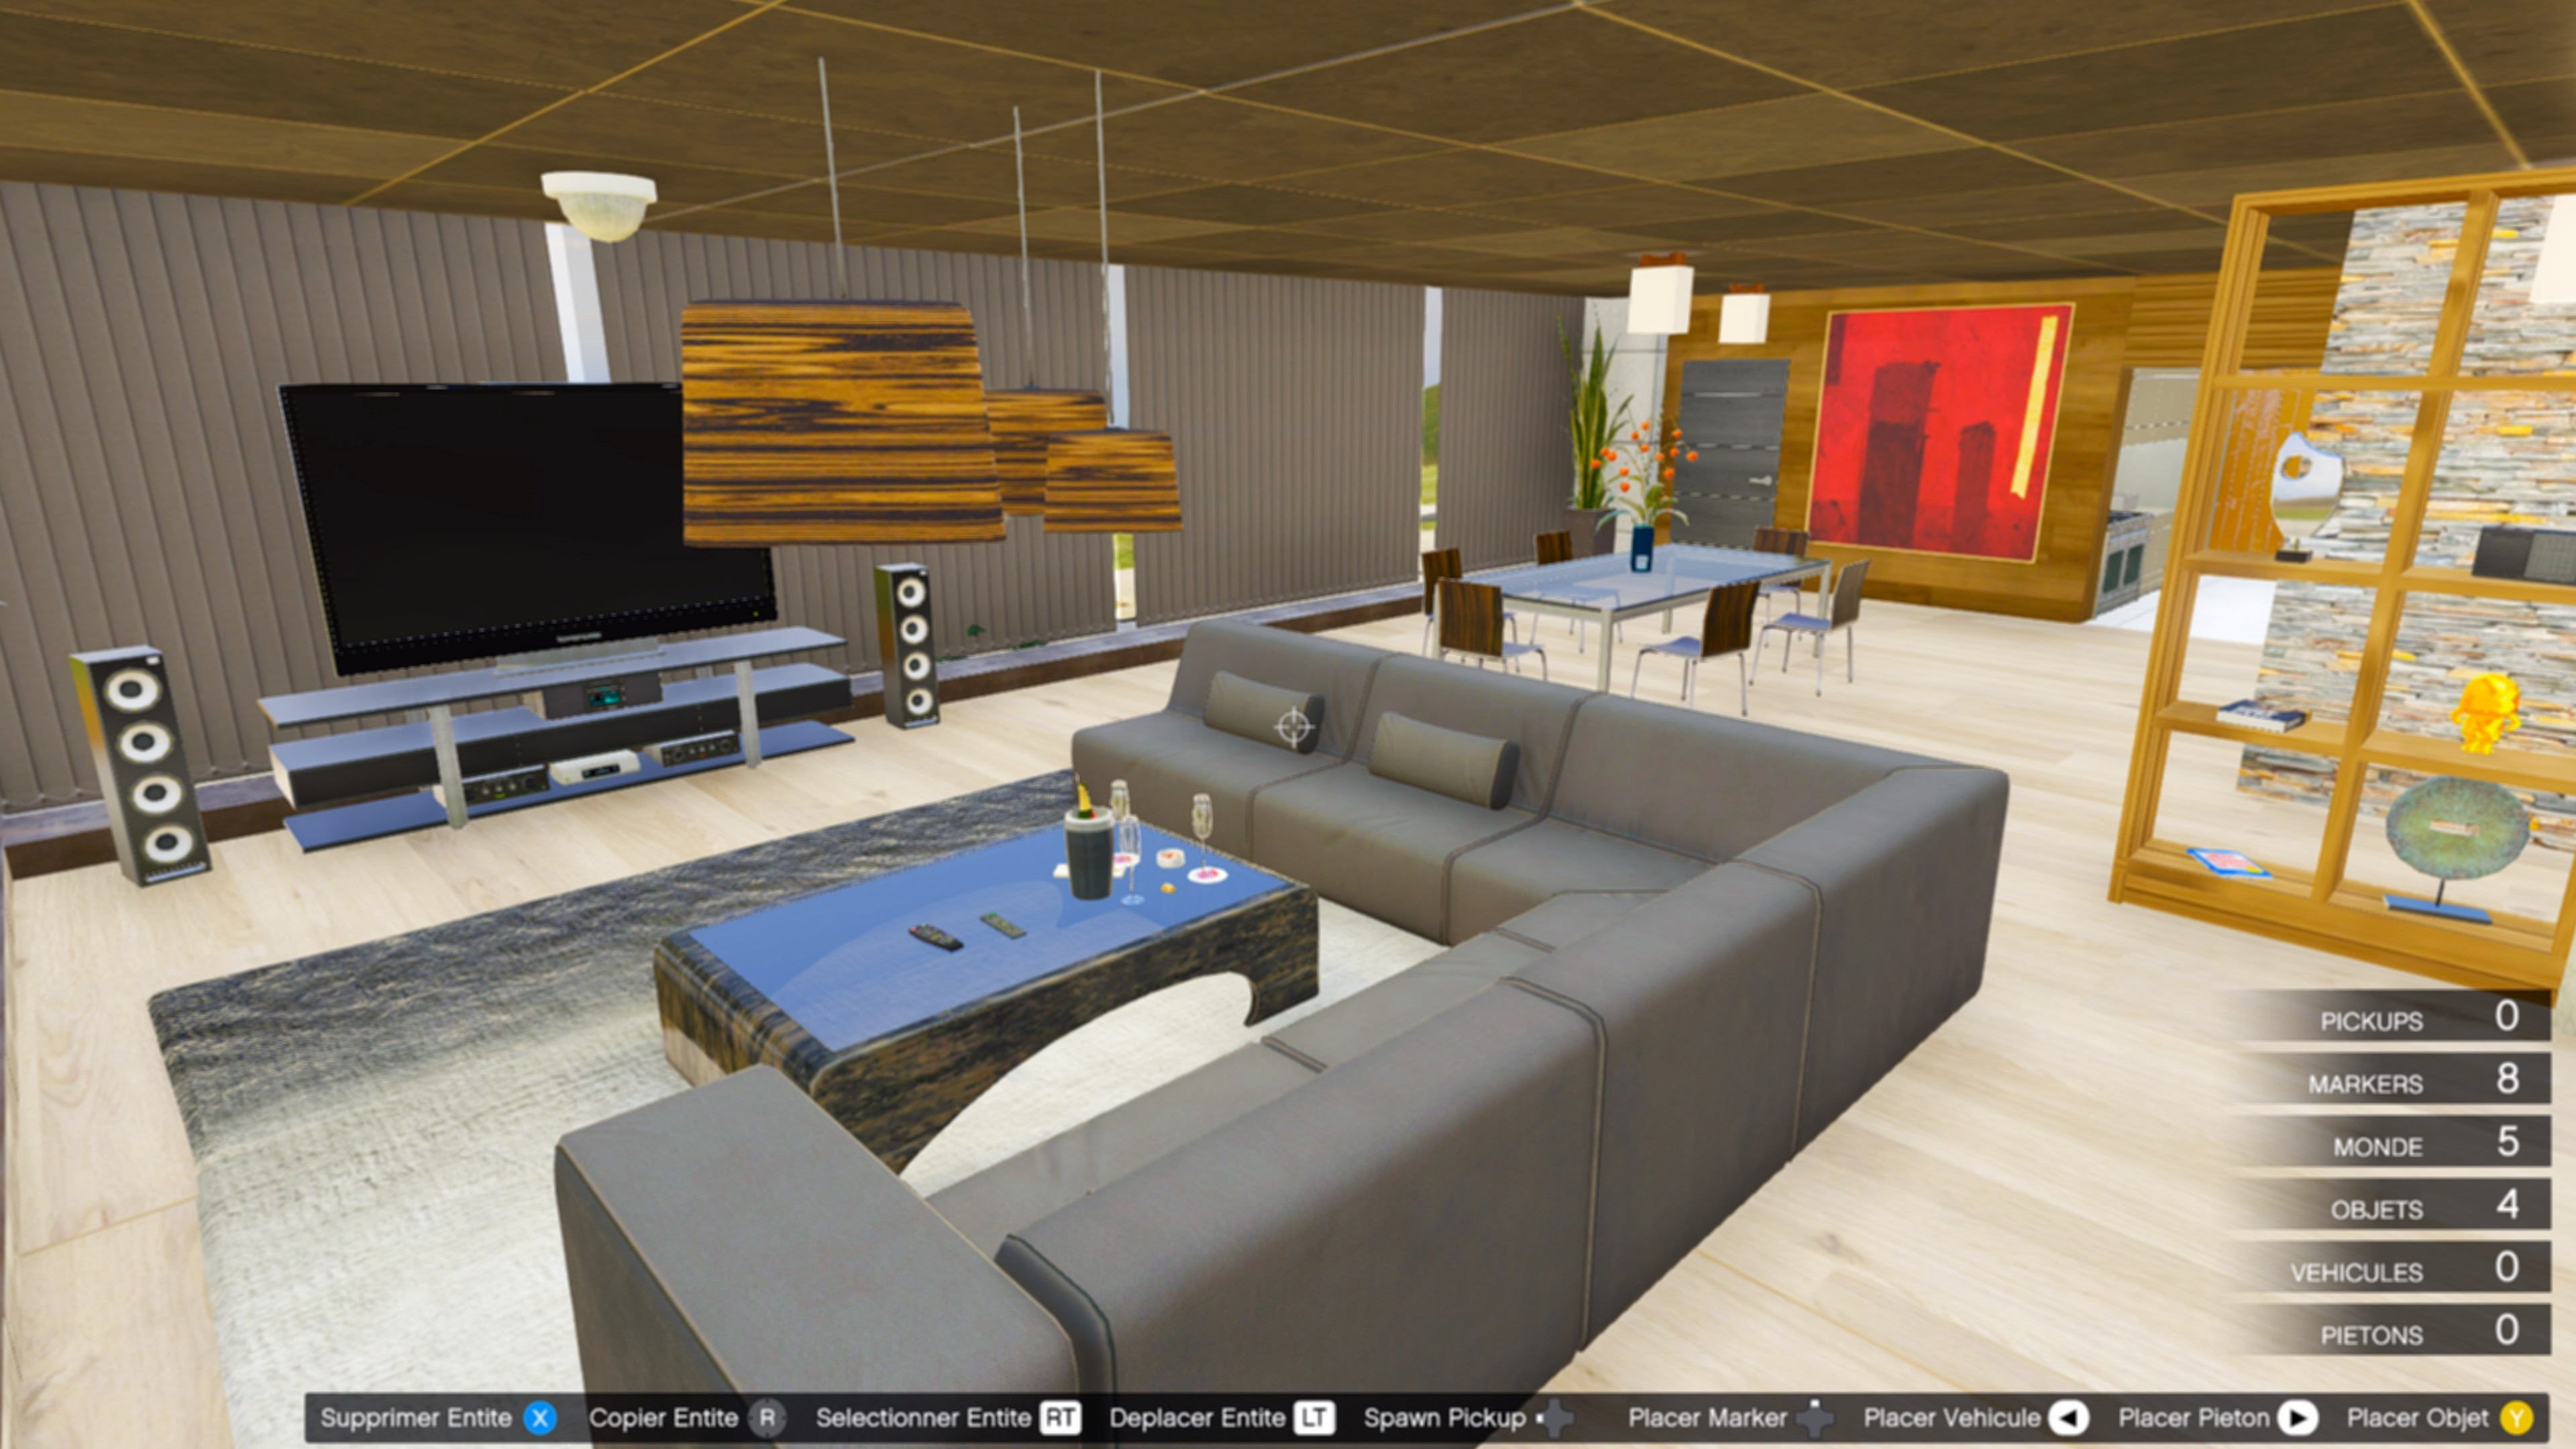 Villa interior map editor ymap gta5 for Designer apartment gta 5